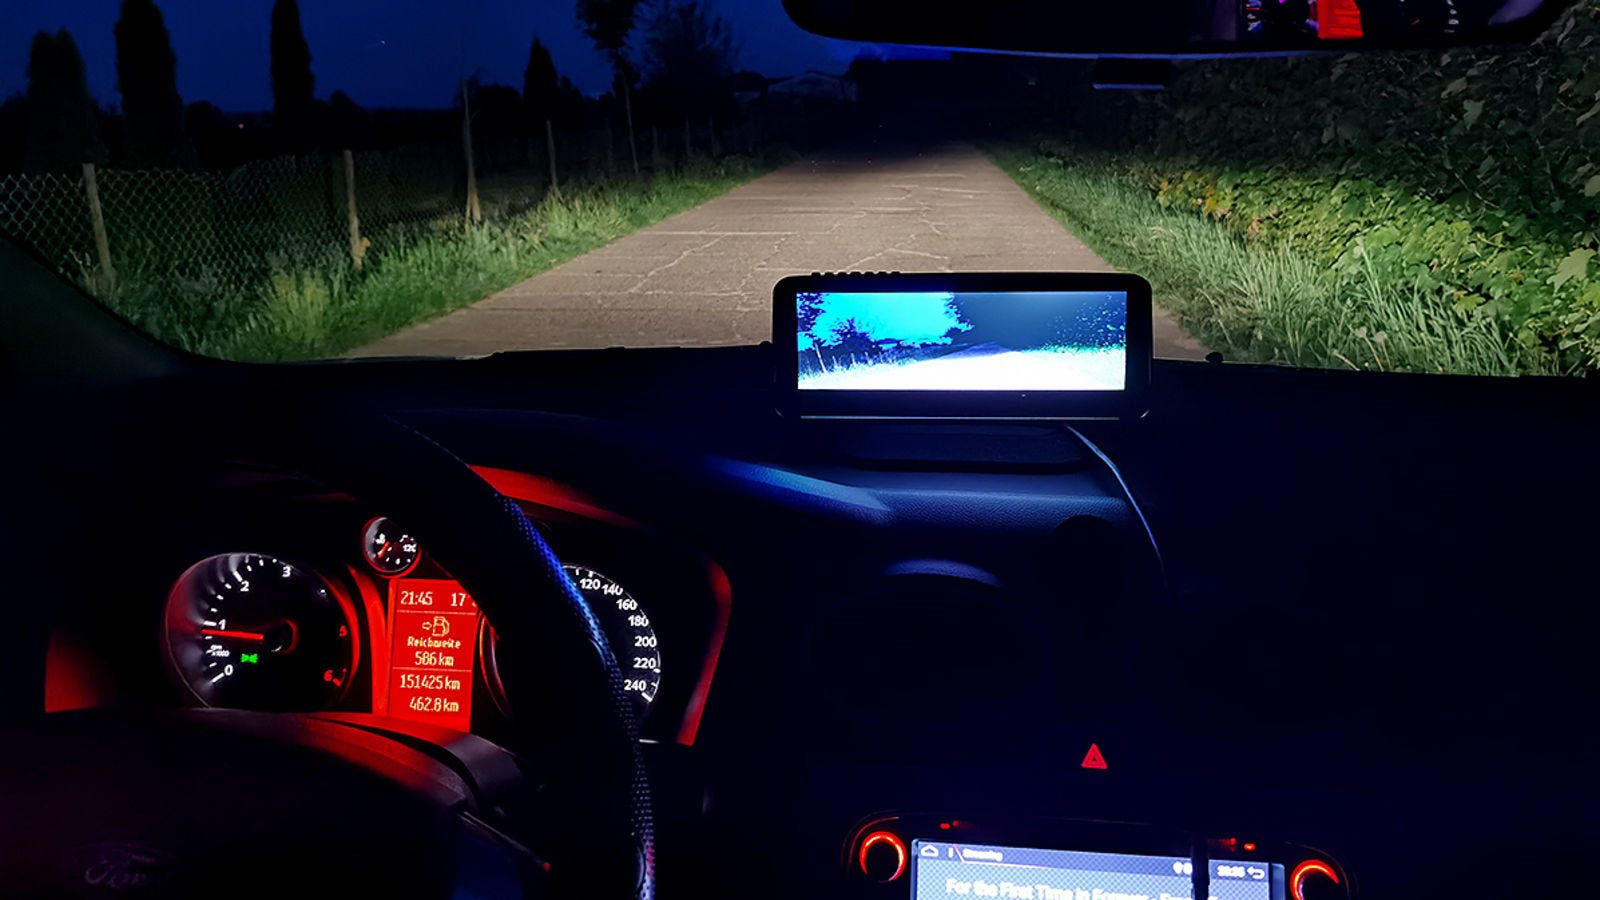 The Lanmodo Night Vision system literally turns night into day.